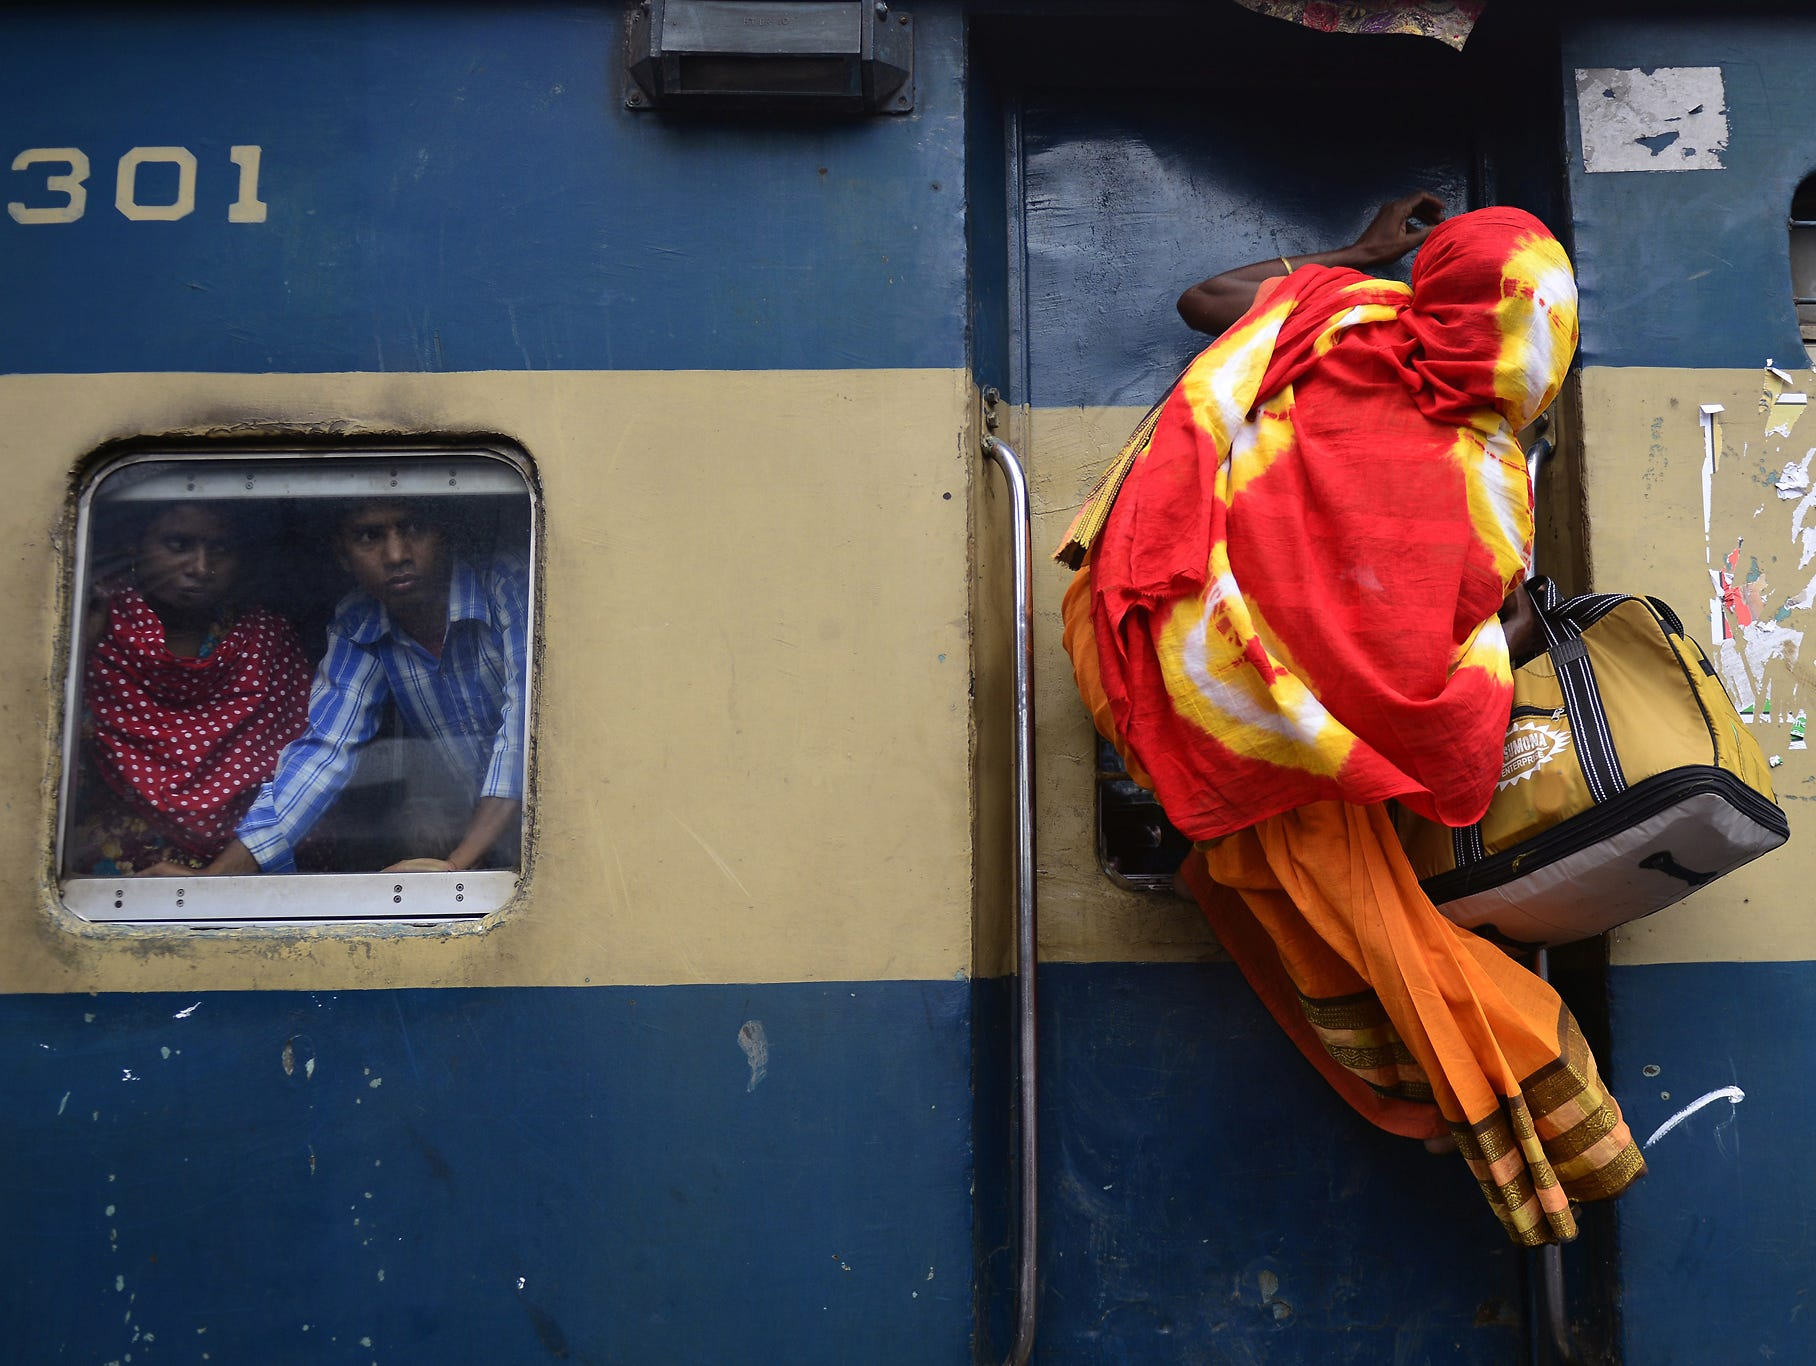 A woman climbs onto a train as people rush home to their villages to be with their families before the start of Eid al-Fitr festivities in Dhaka, Bangladesh.